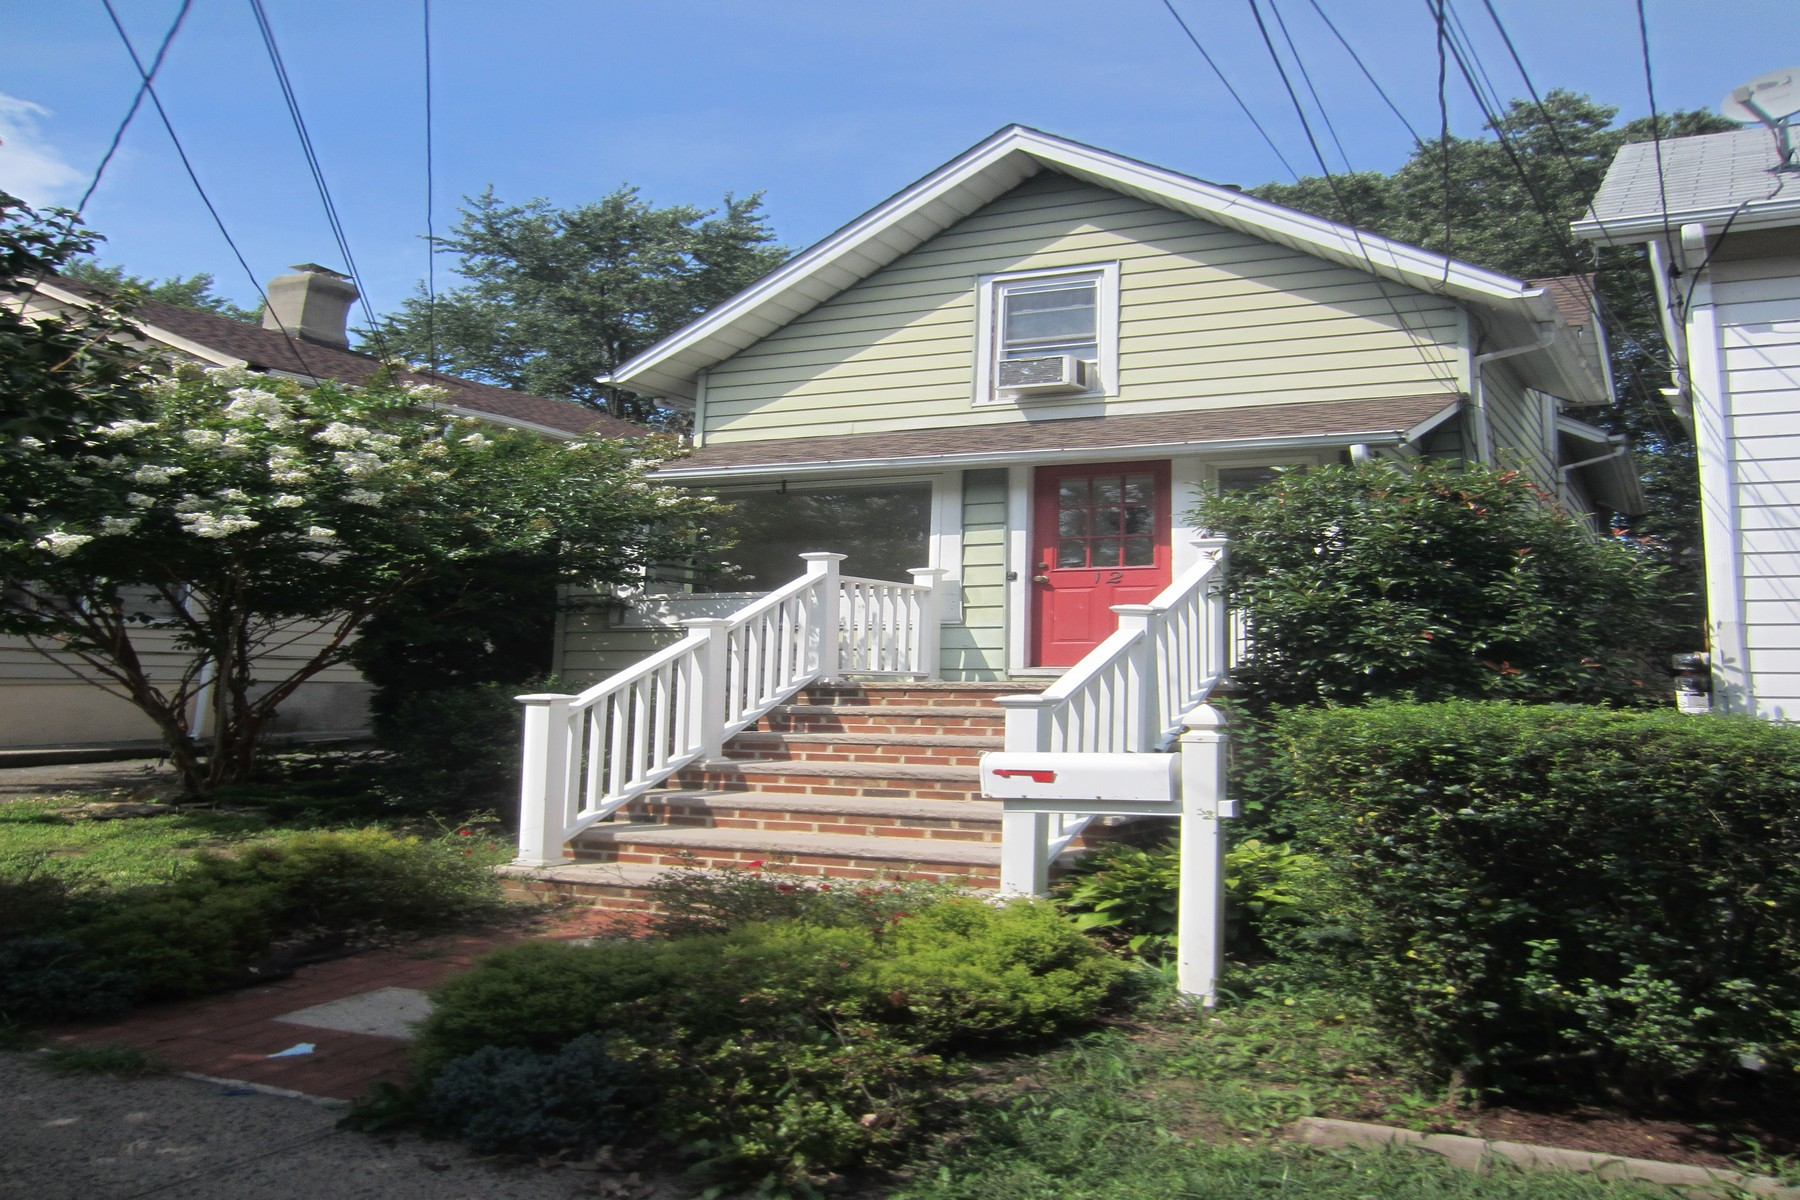 Property para Arrendar às Updated Colonial for Rent 12 Charles Street, Montclair, Nova Jersey 07042 Estados Unidos